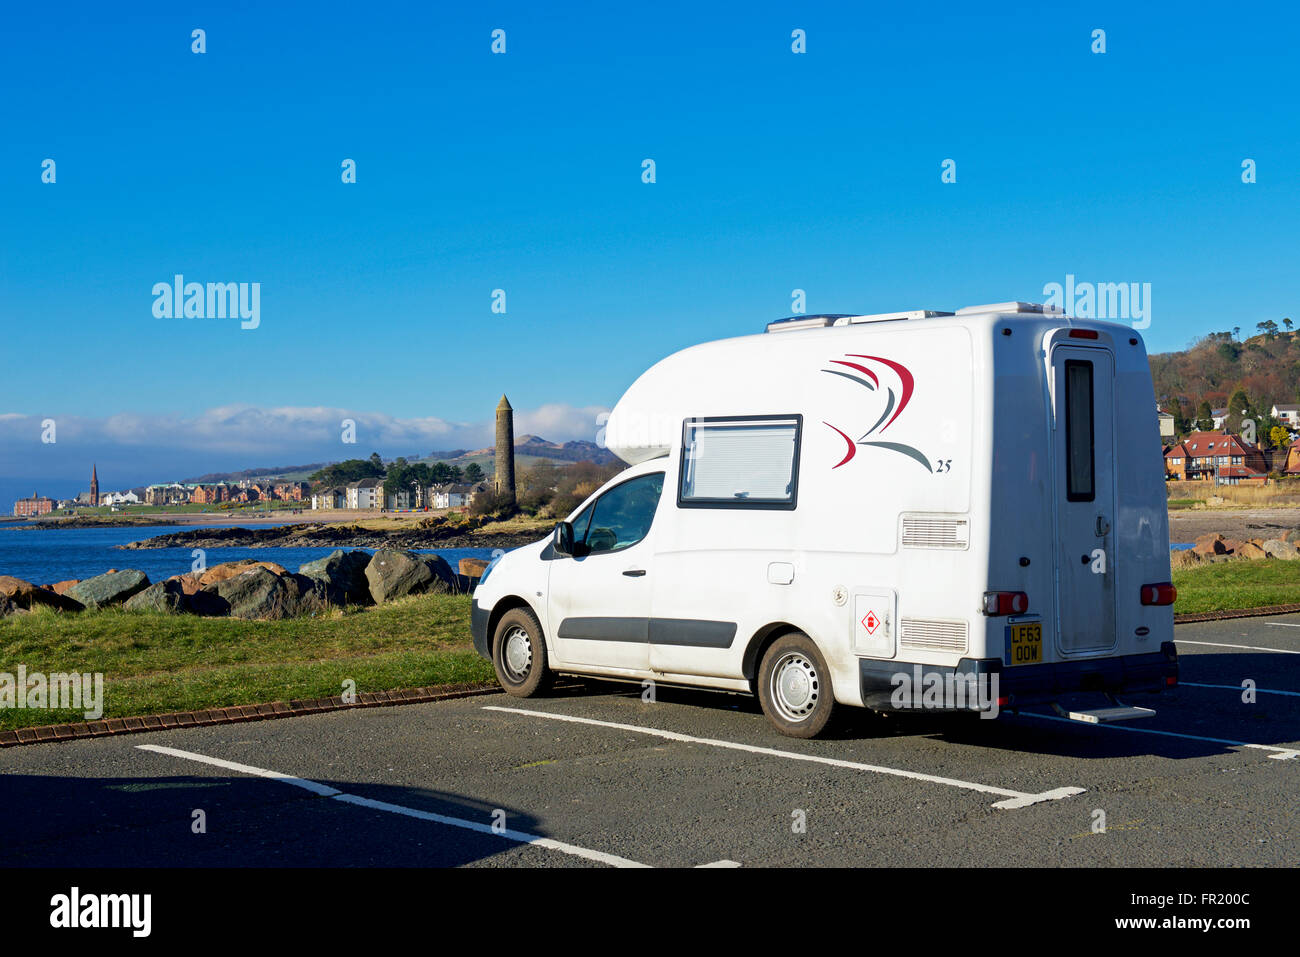 Small motorhome, Romahome 25, parked overlooking the coastal town of Largs, North Ayrshire, Scotland UK - Stock Image